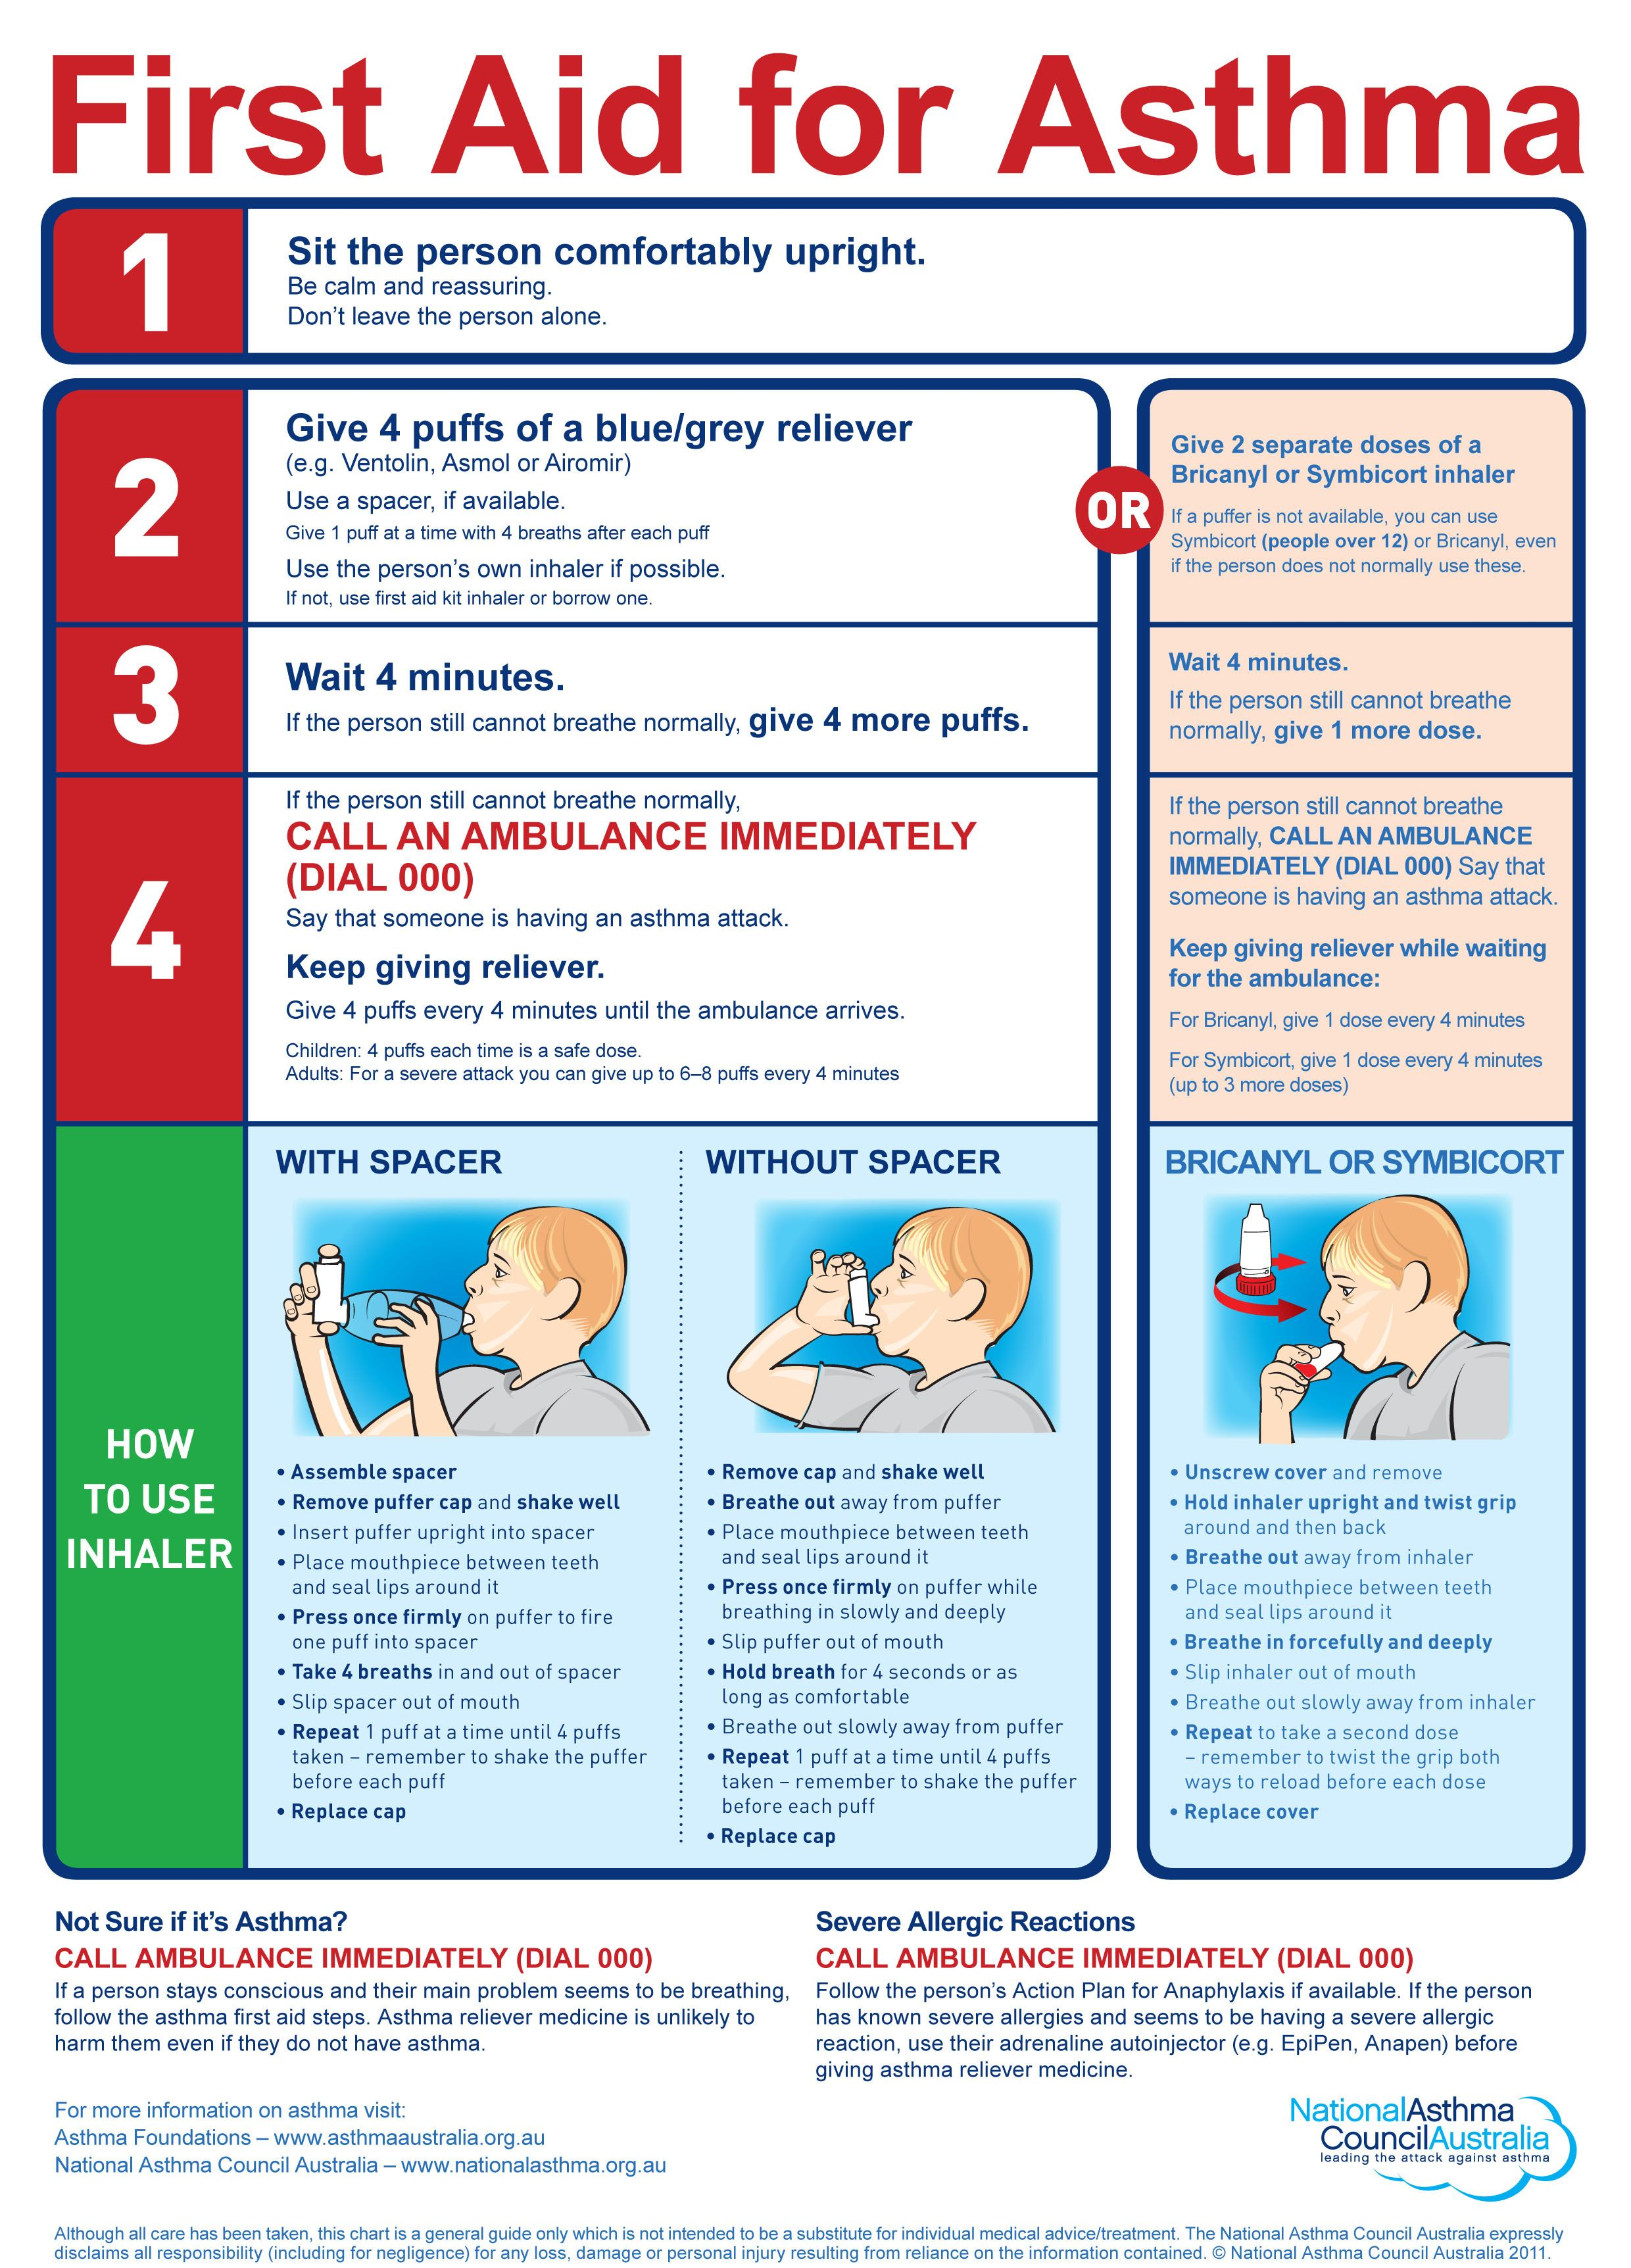 ASTHMA FIRST AID During an Attack   National Asthma Council Australia